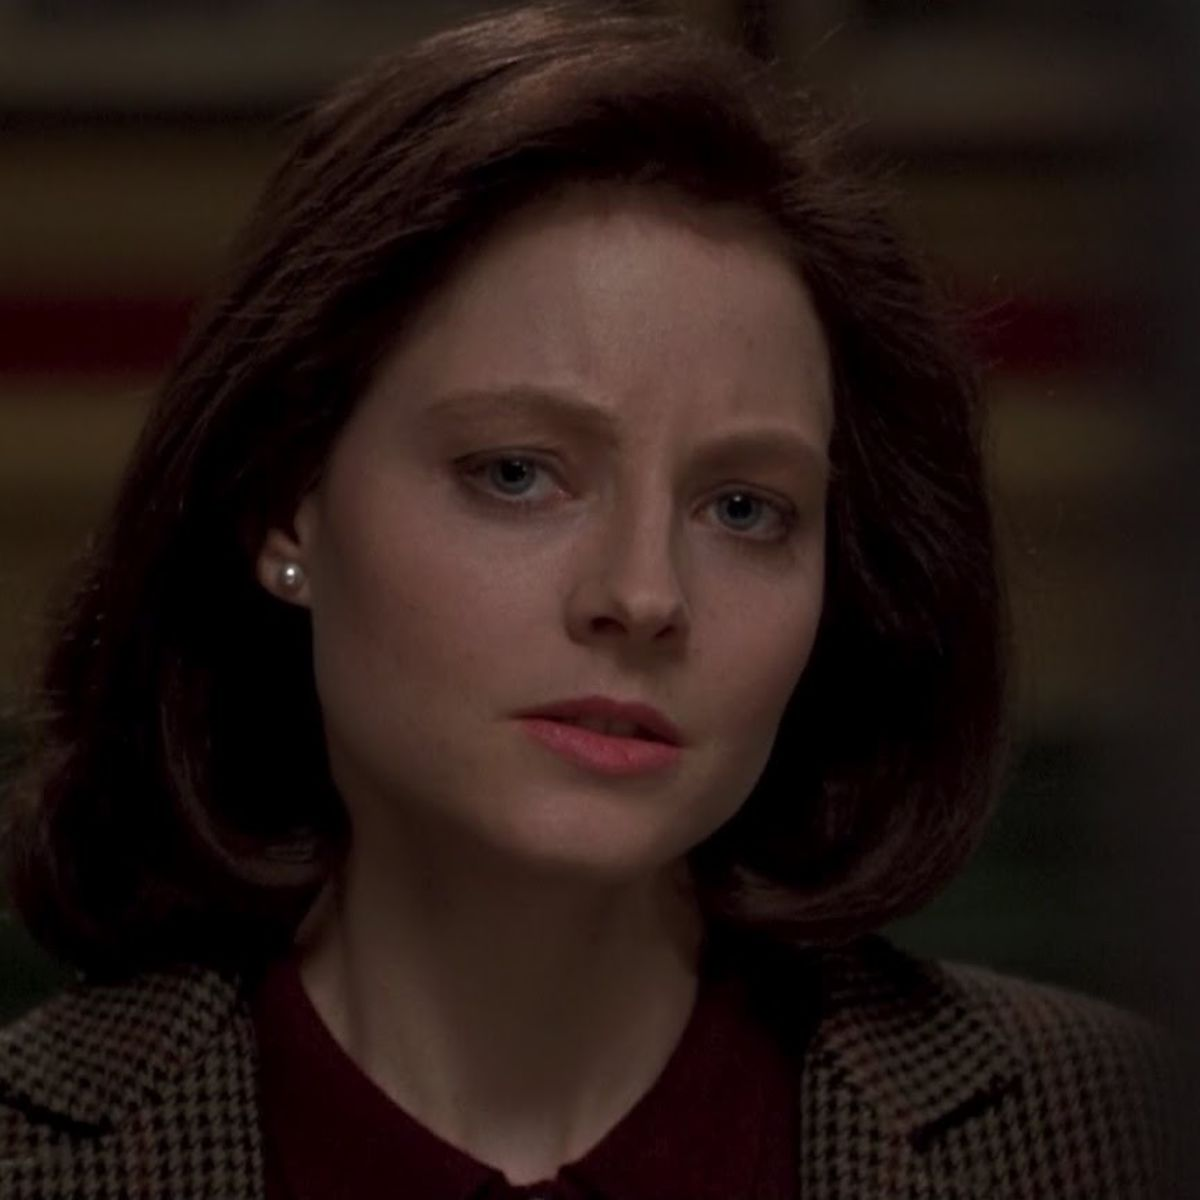 silence_of_the_lambs_jodie-foster_clarice-starling.jpg